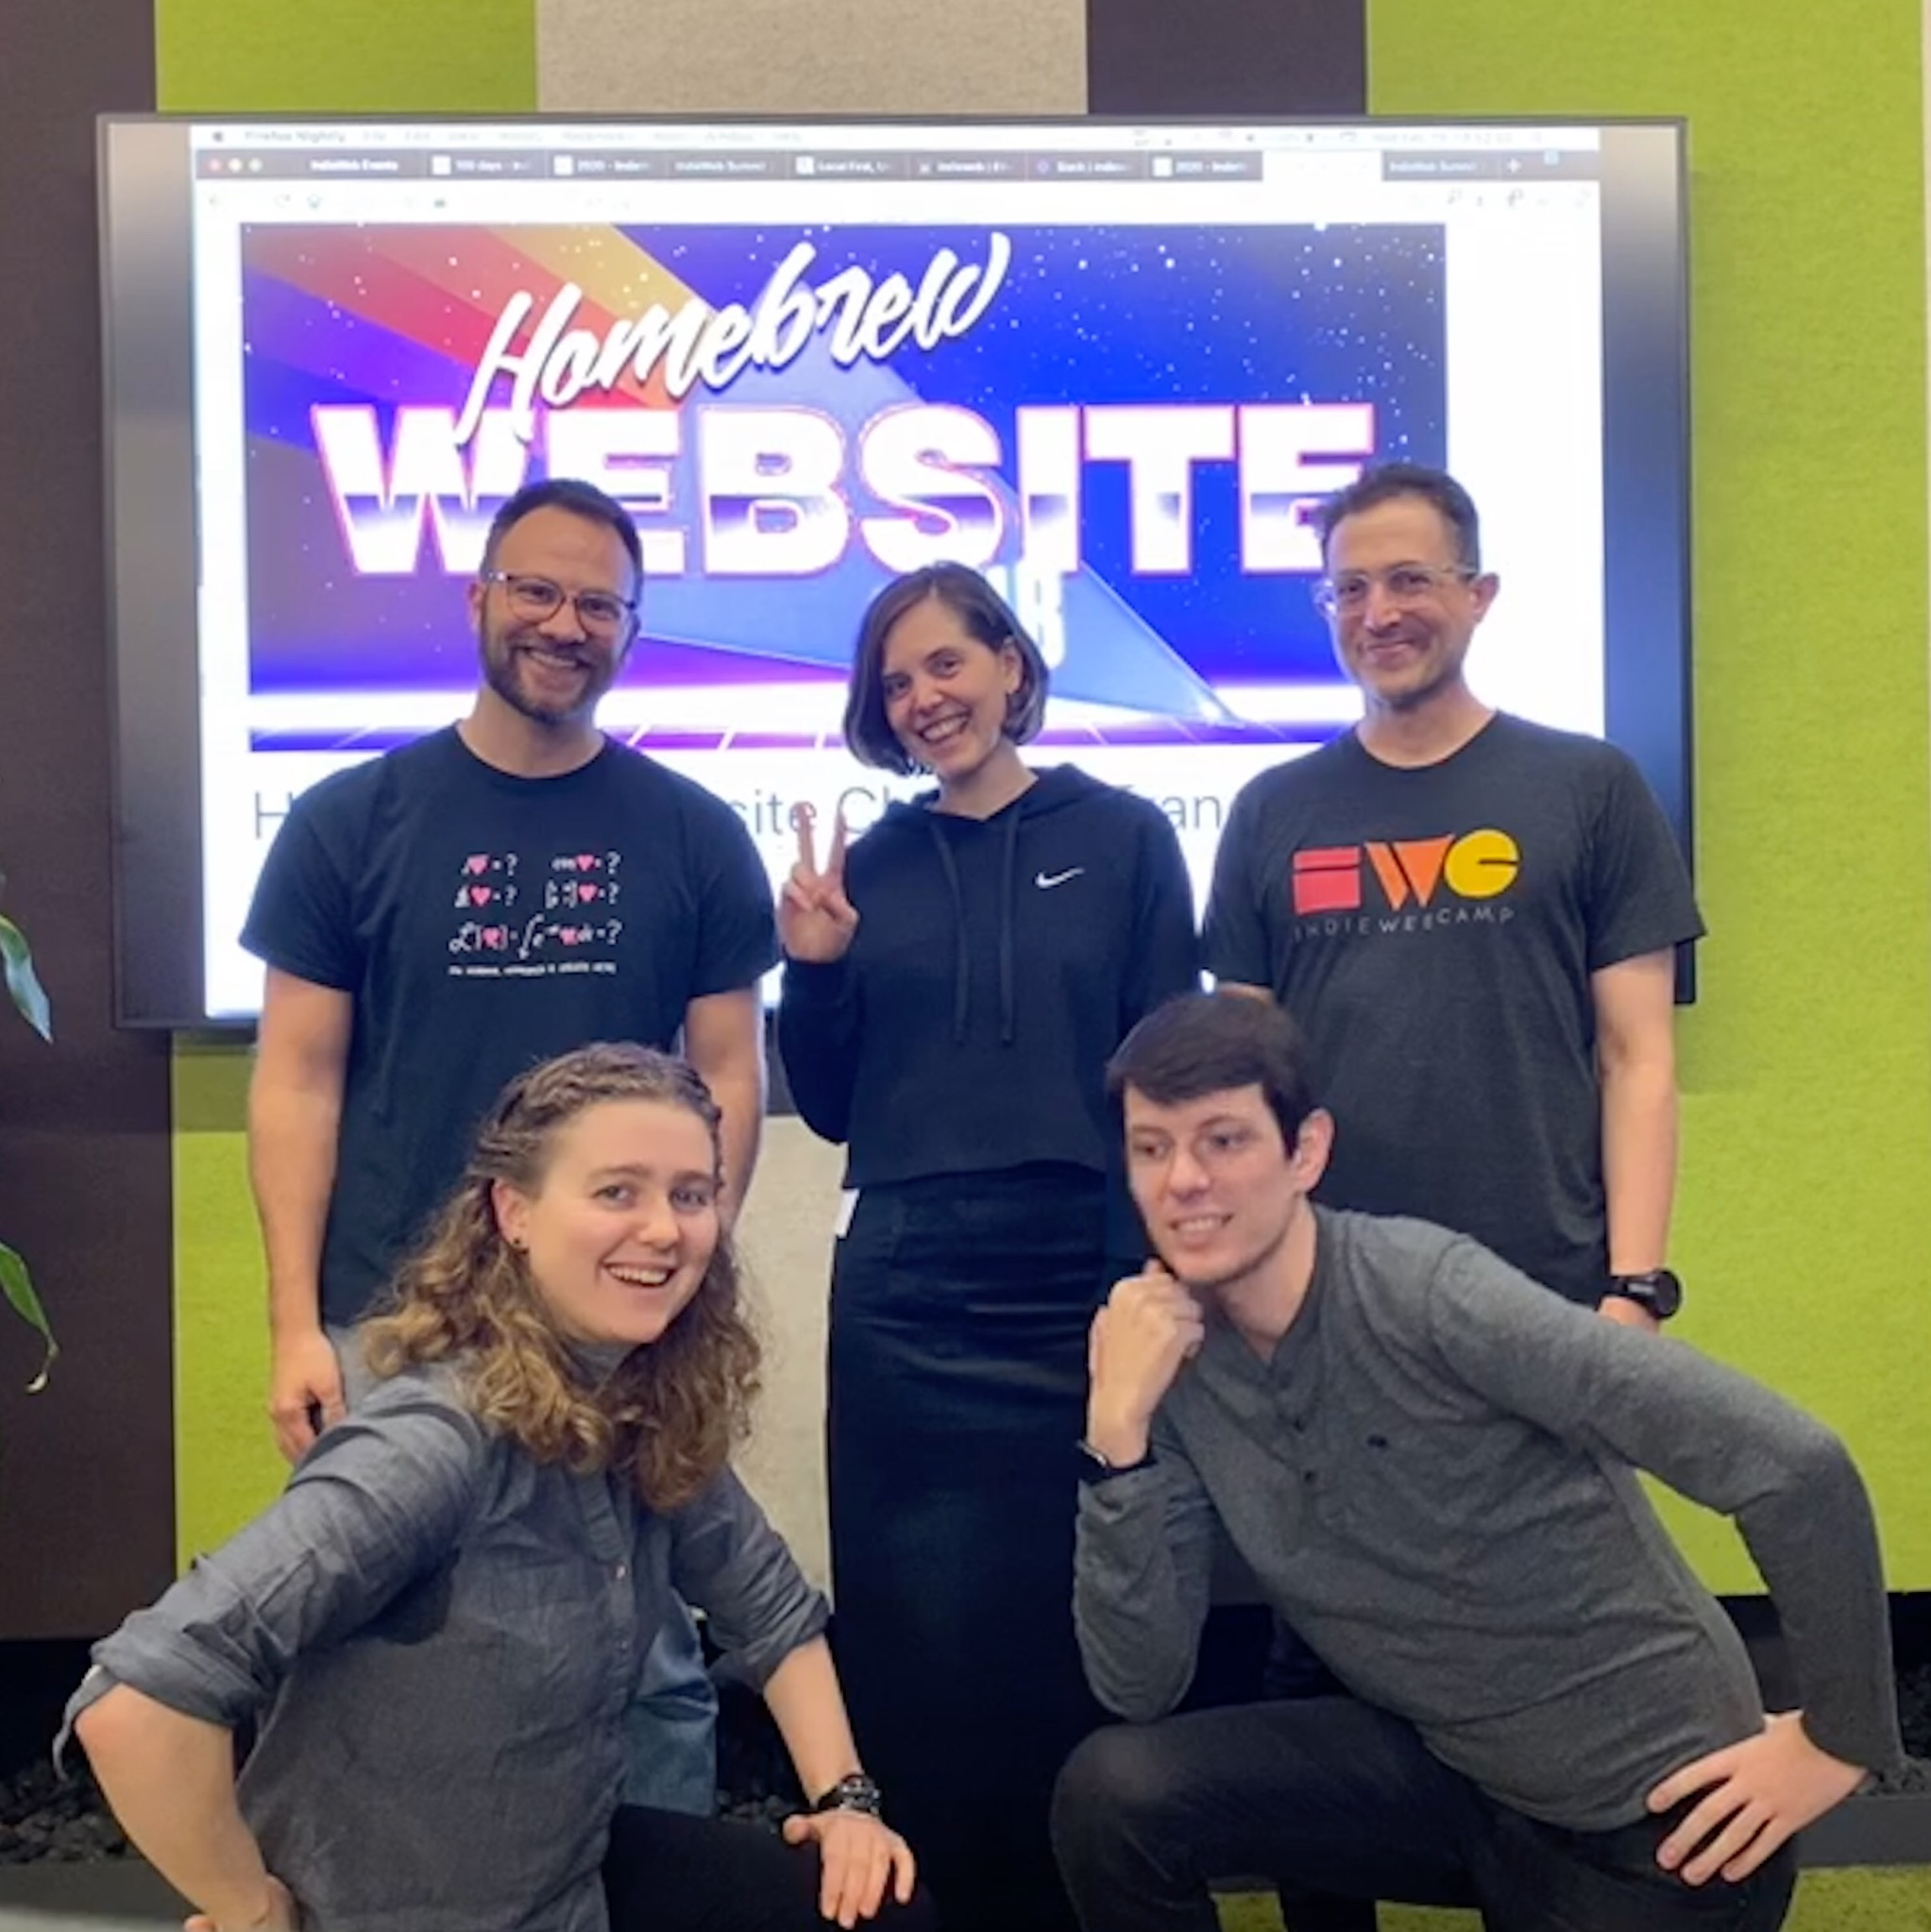 John, Katherine, Tantek, Alex, and Andre at Homebrew Website Club San Francisco, standing in front of a screen with the 1980s style graphic of the Homebrew Website Club.